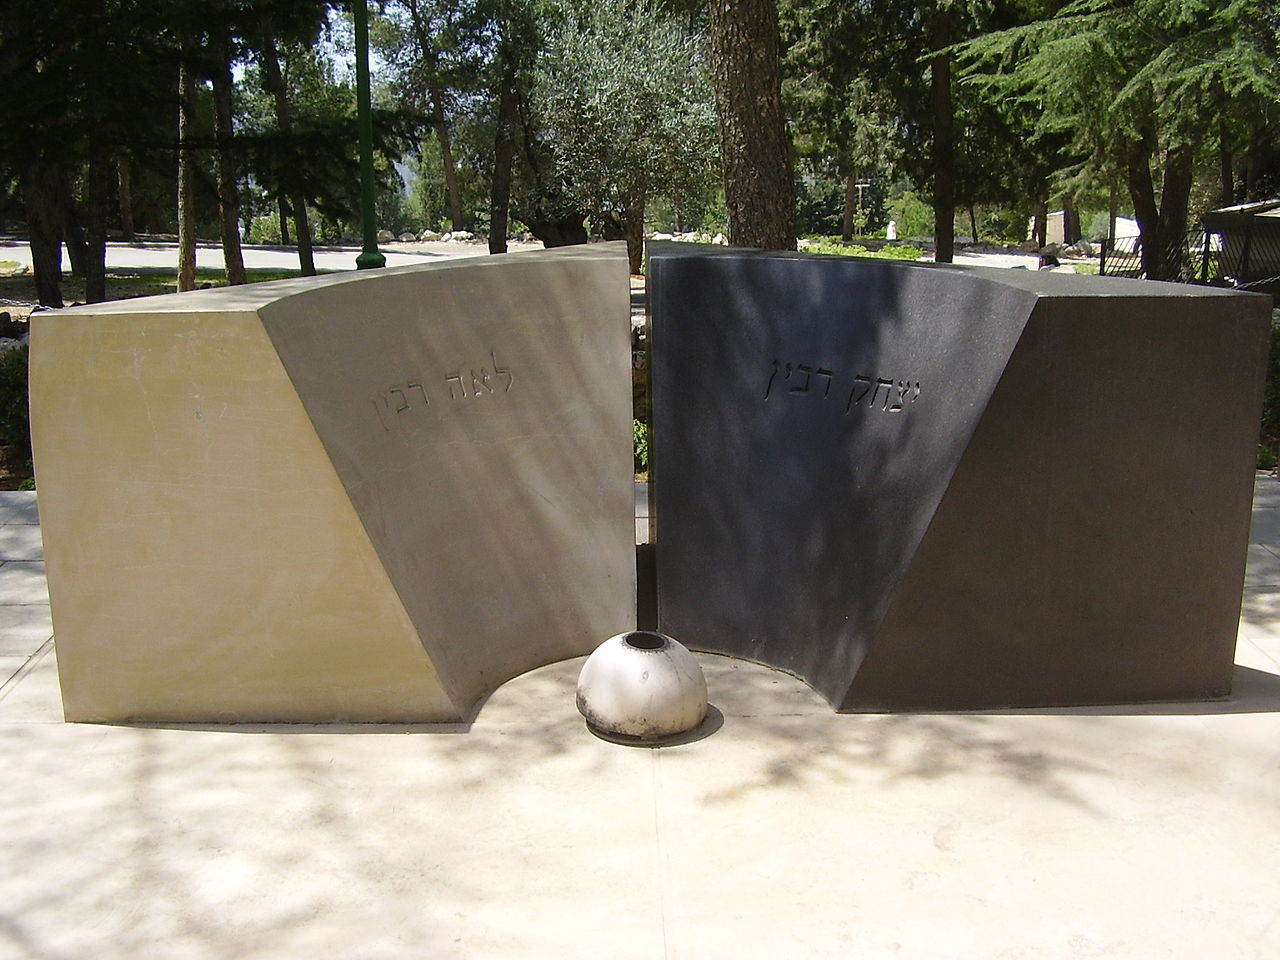 Grave monument of Lea (L) and Yitzhak Rabin (R)